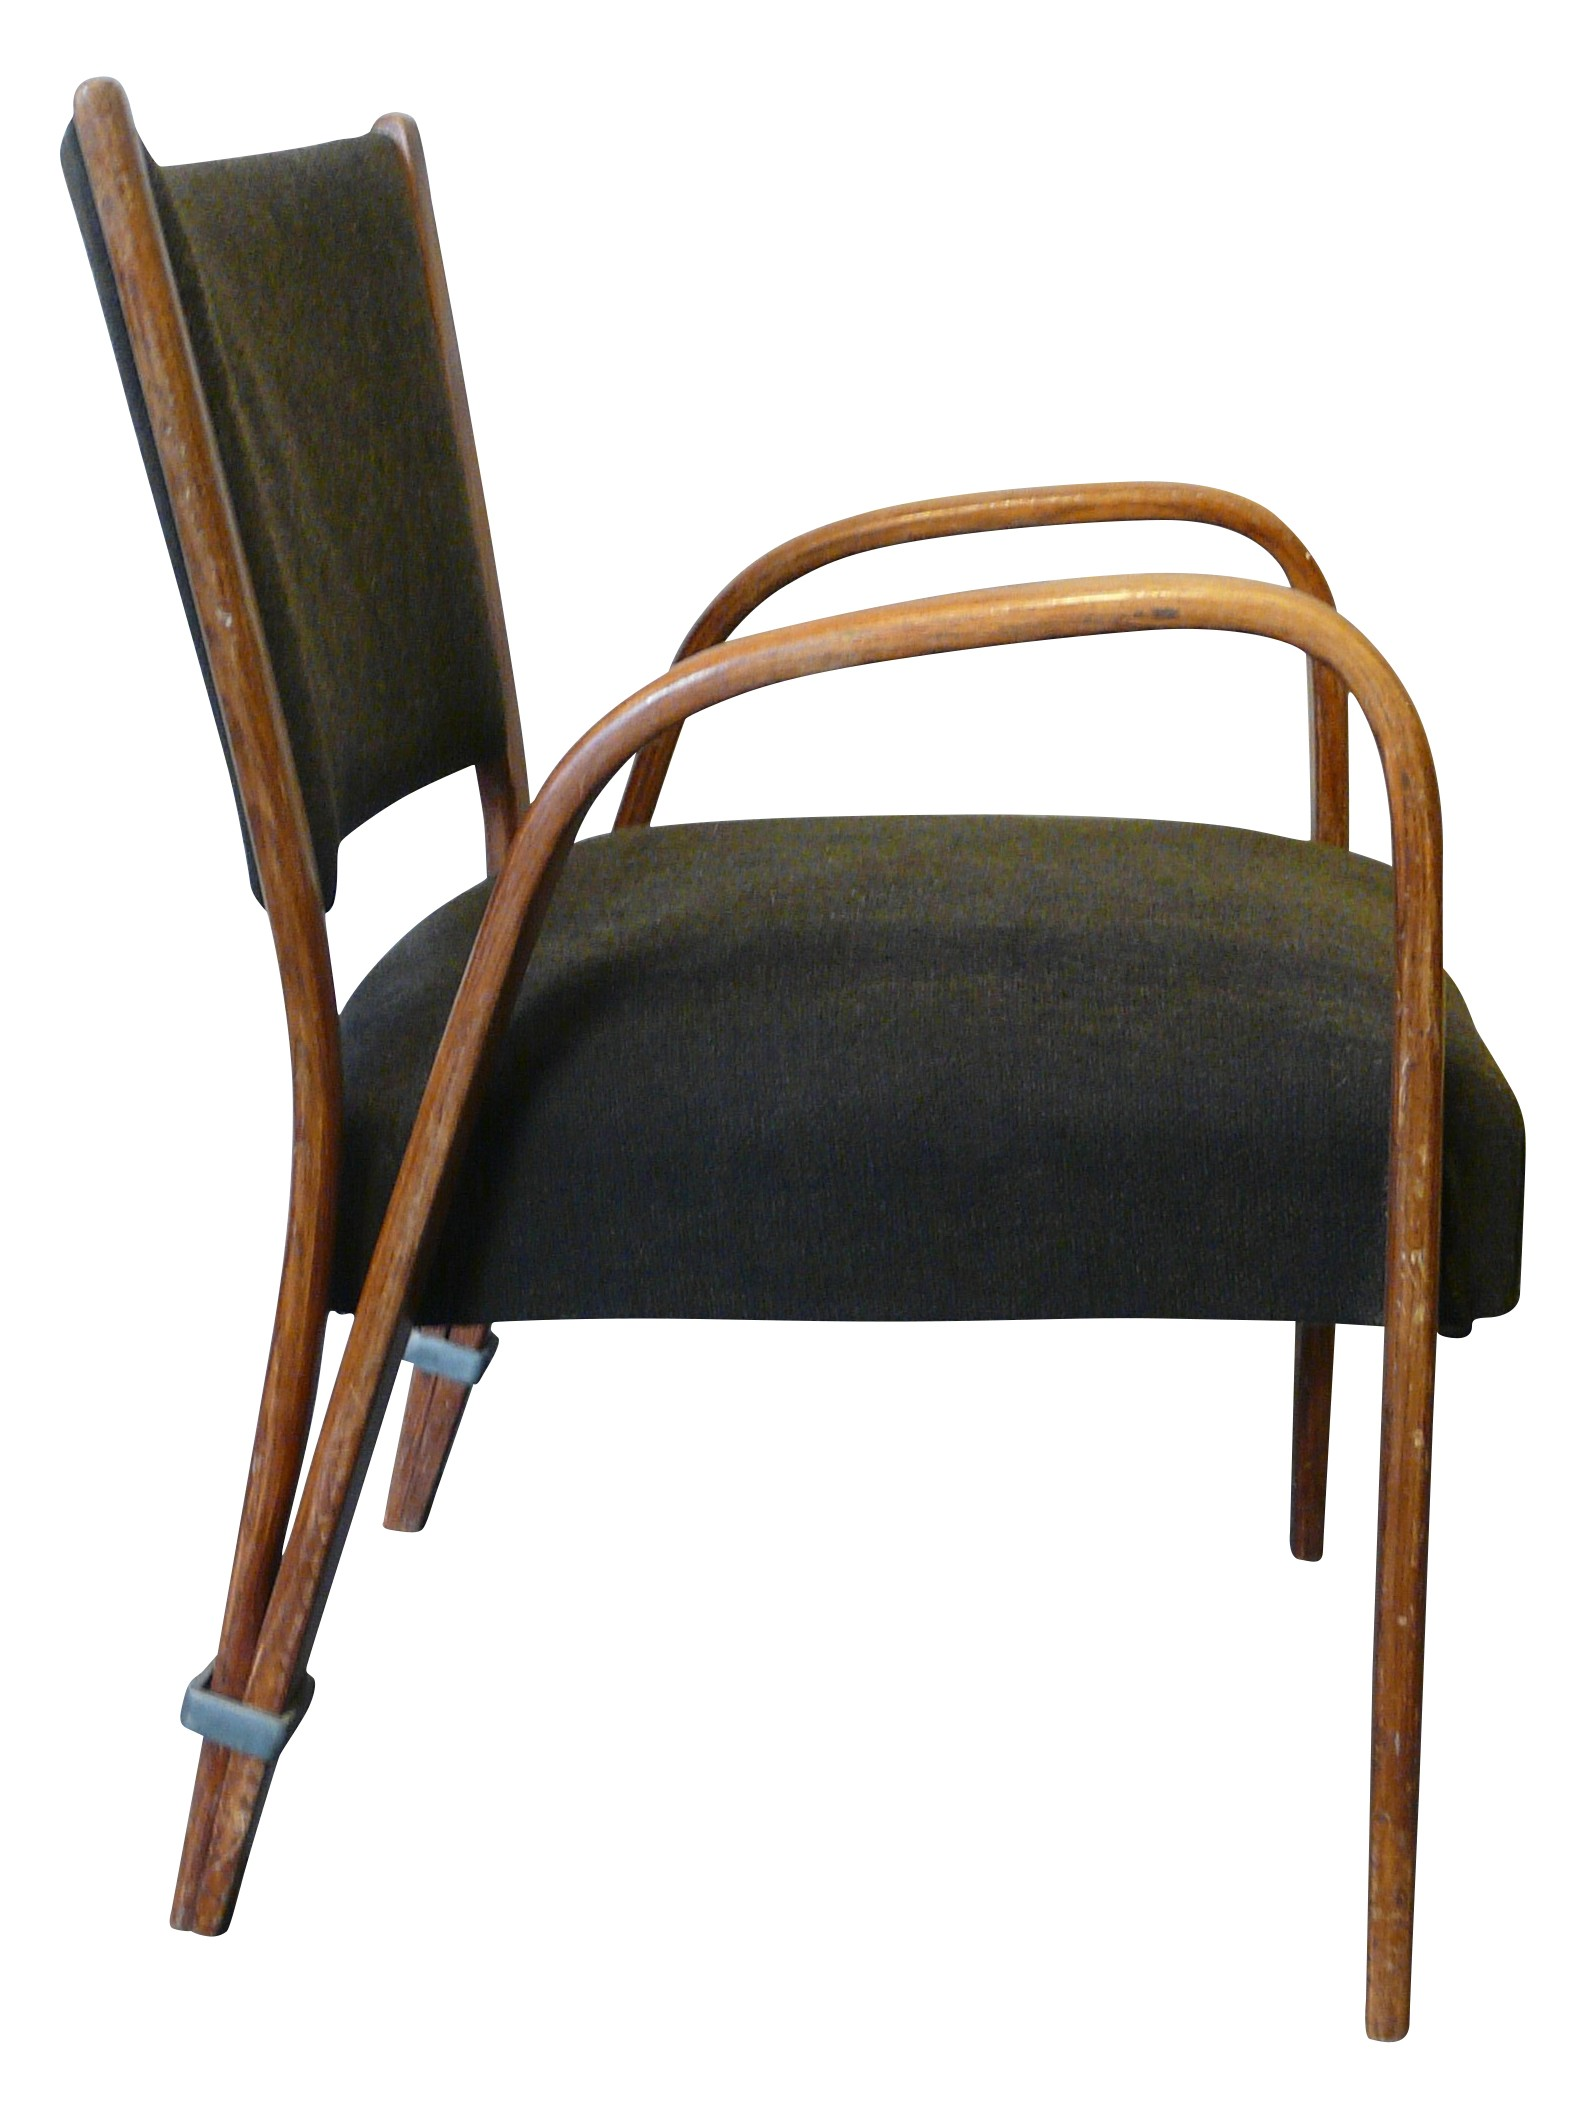 Fauteuils Steiner Vintage Bow Wood Armchair In Ashwood Hugues Steiner 1950s Design Market